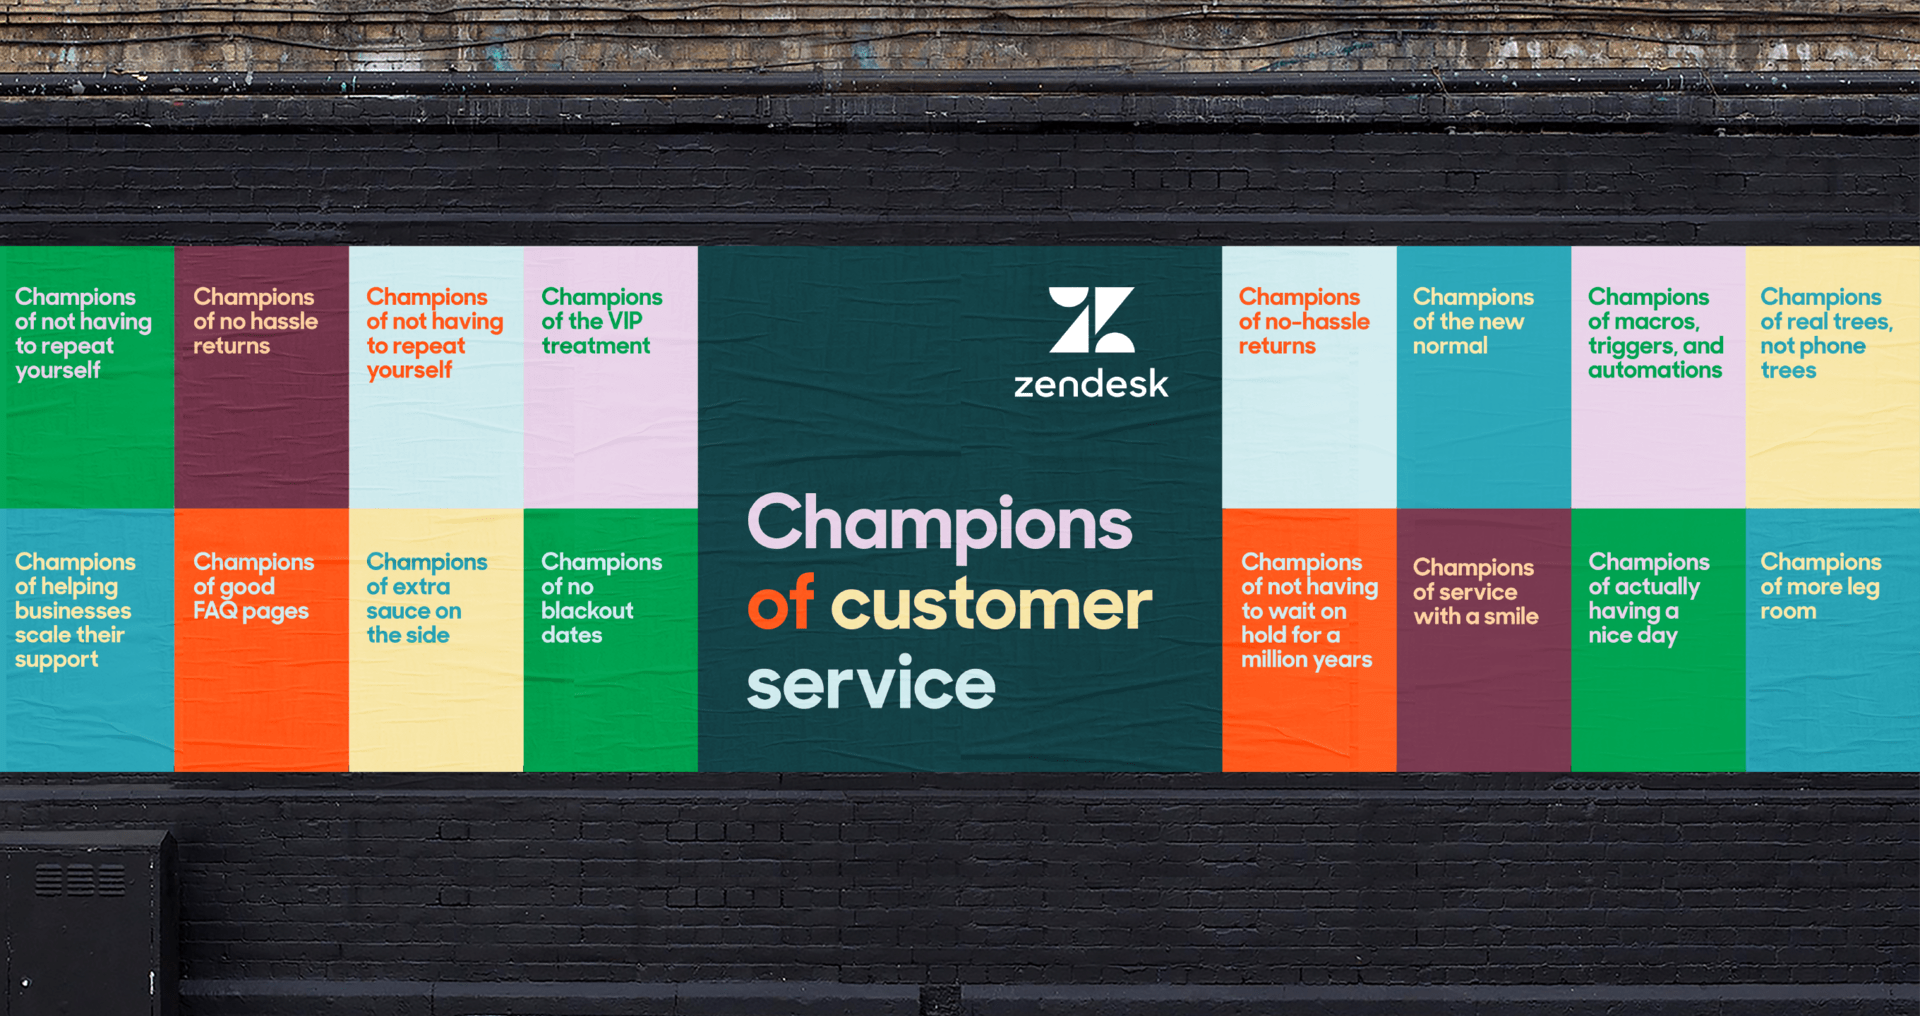 What makes Zendesk champions of customer service